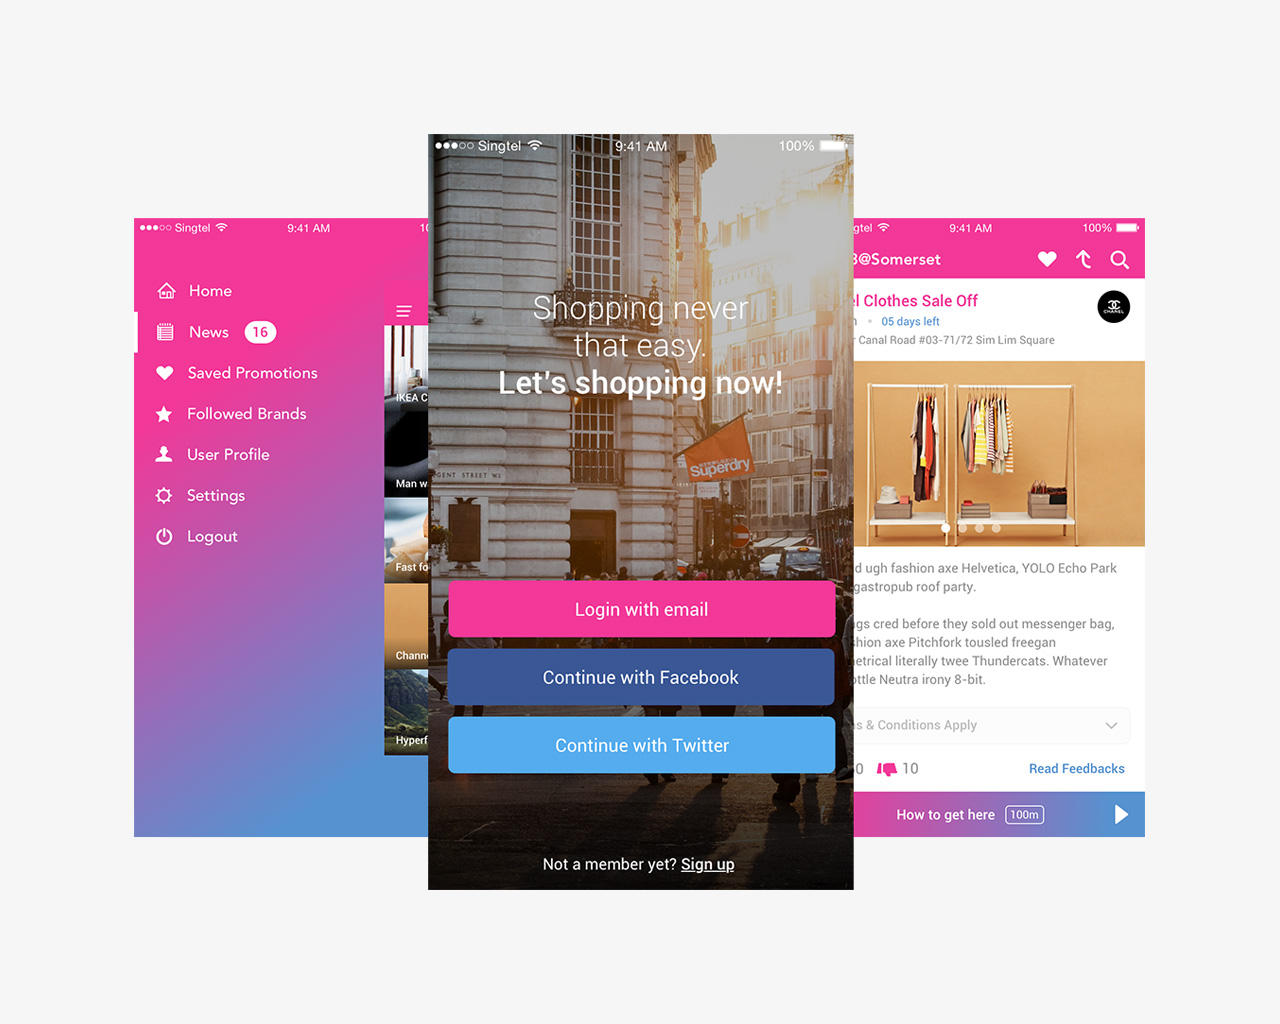 Mobile Application UI Design by hoanggiang12 - 85080